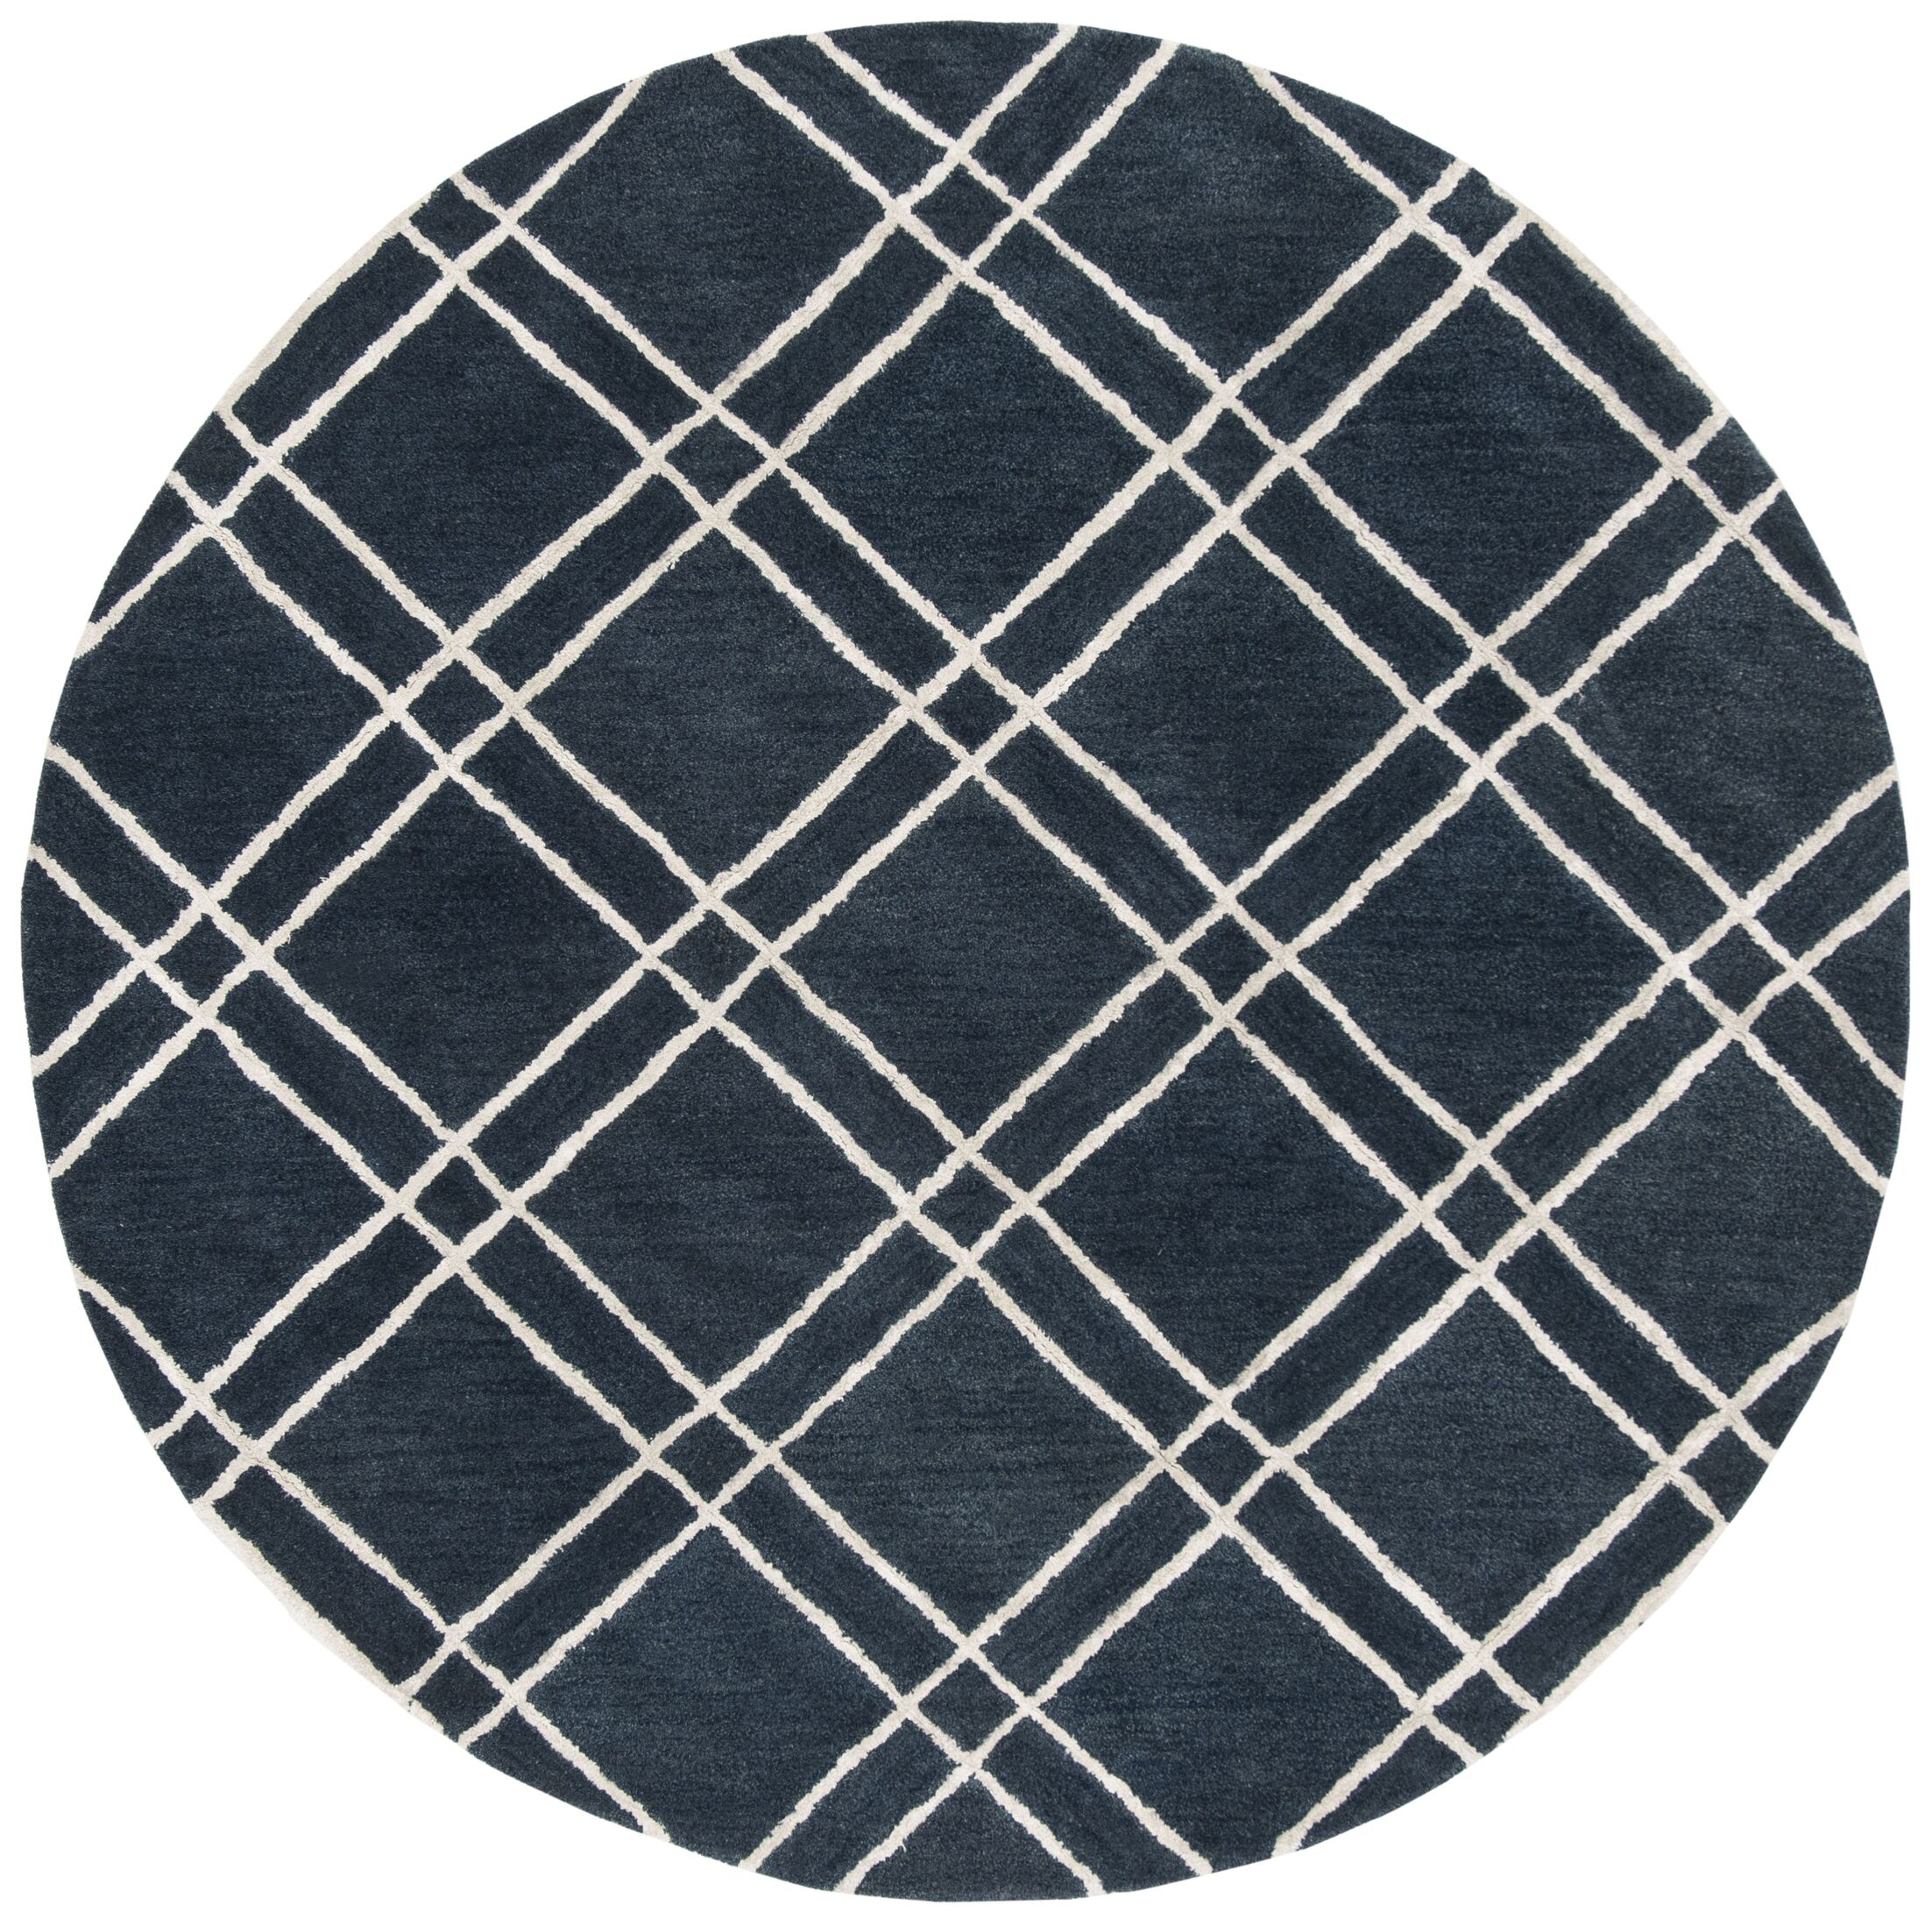 Dirks Hand-Tufted Wool Navy Area Rug Rug Size: Round 6'